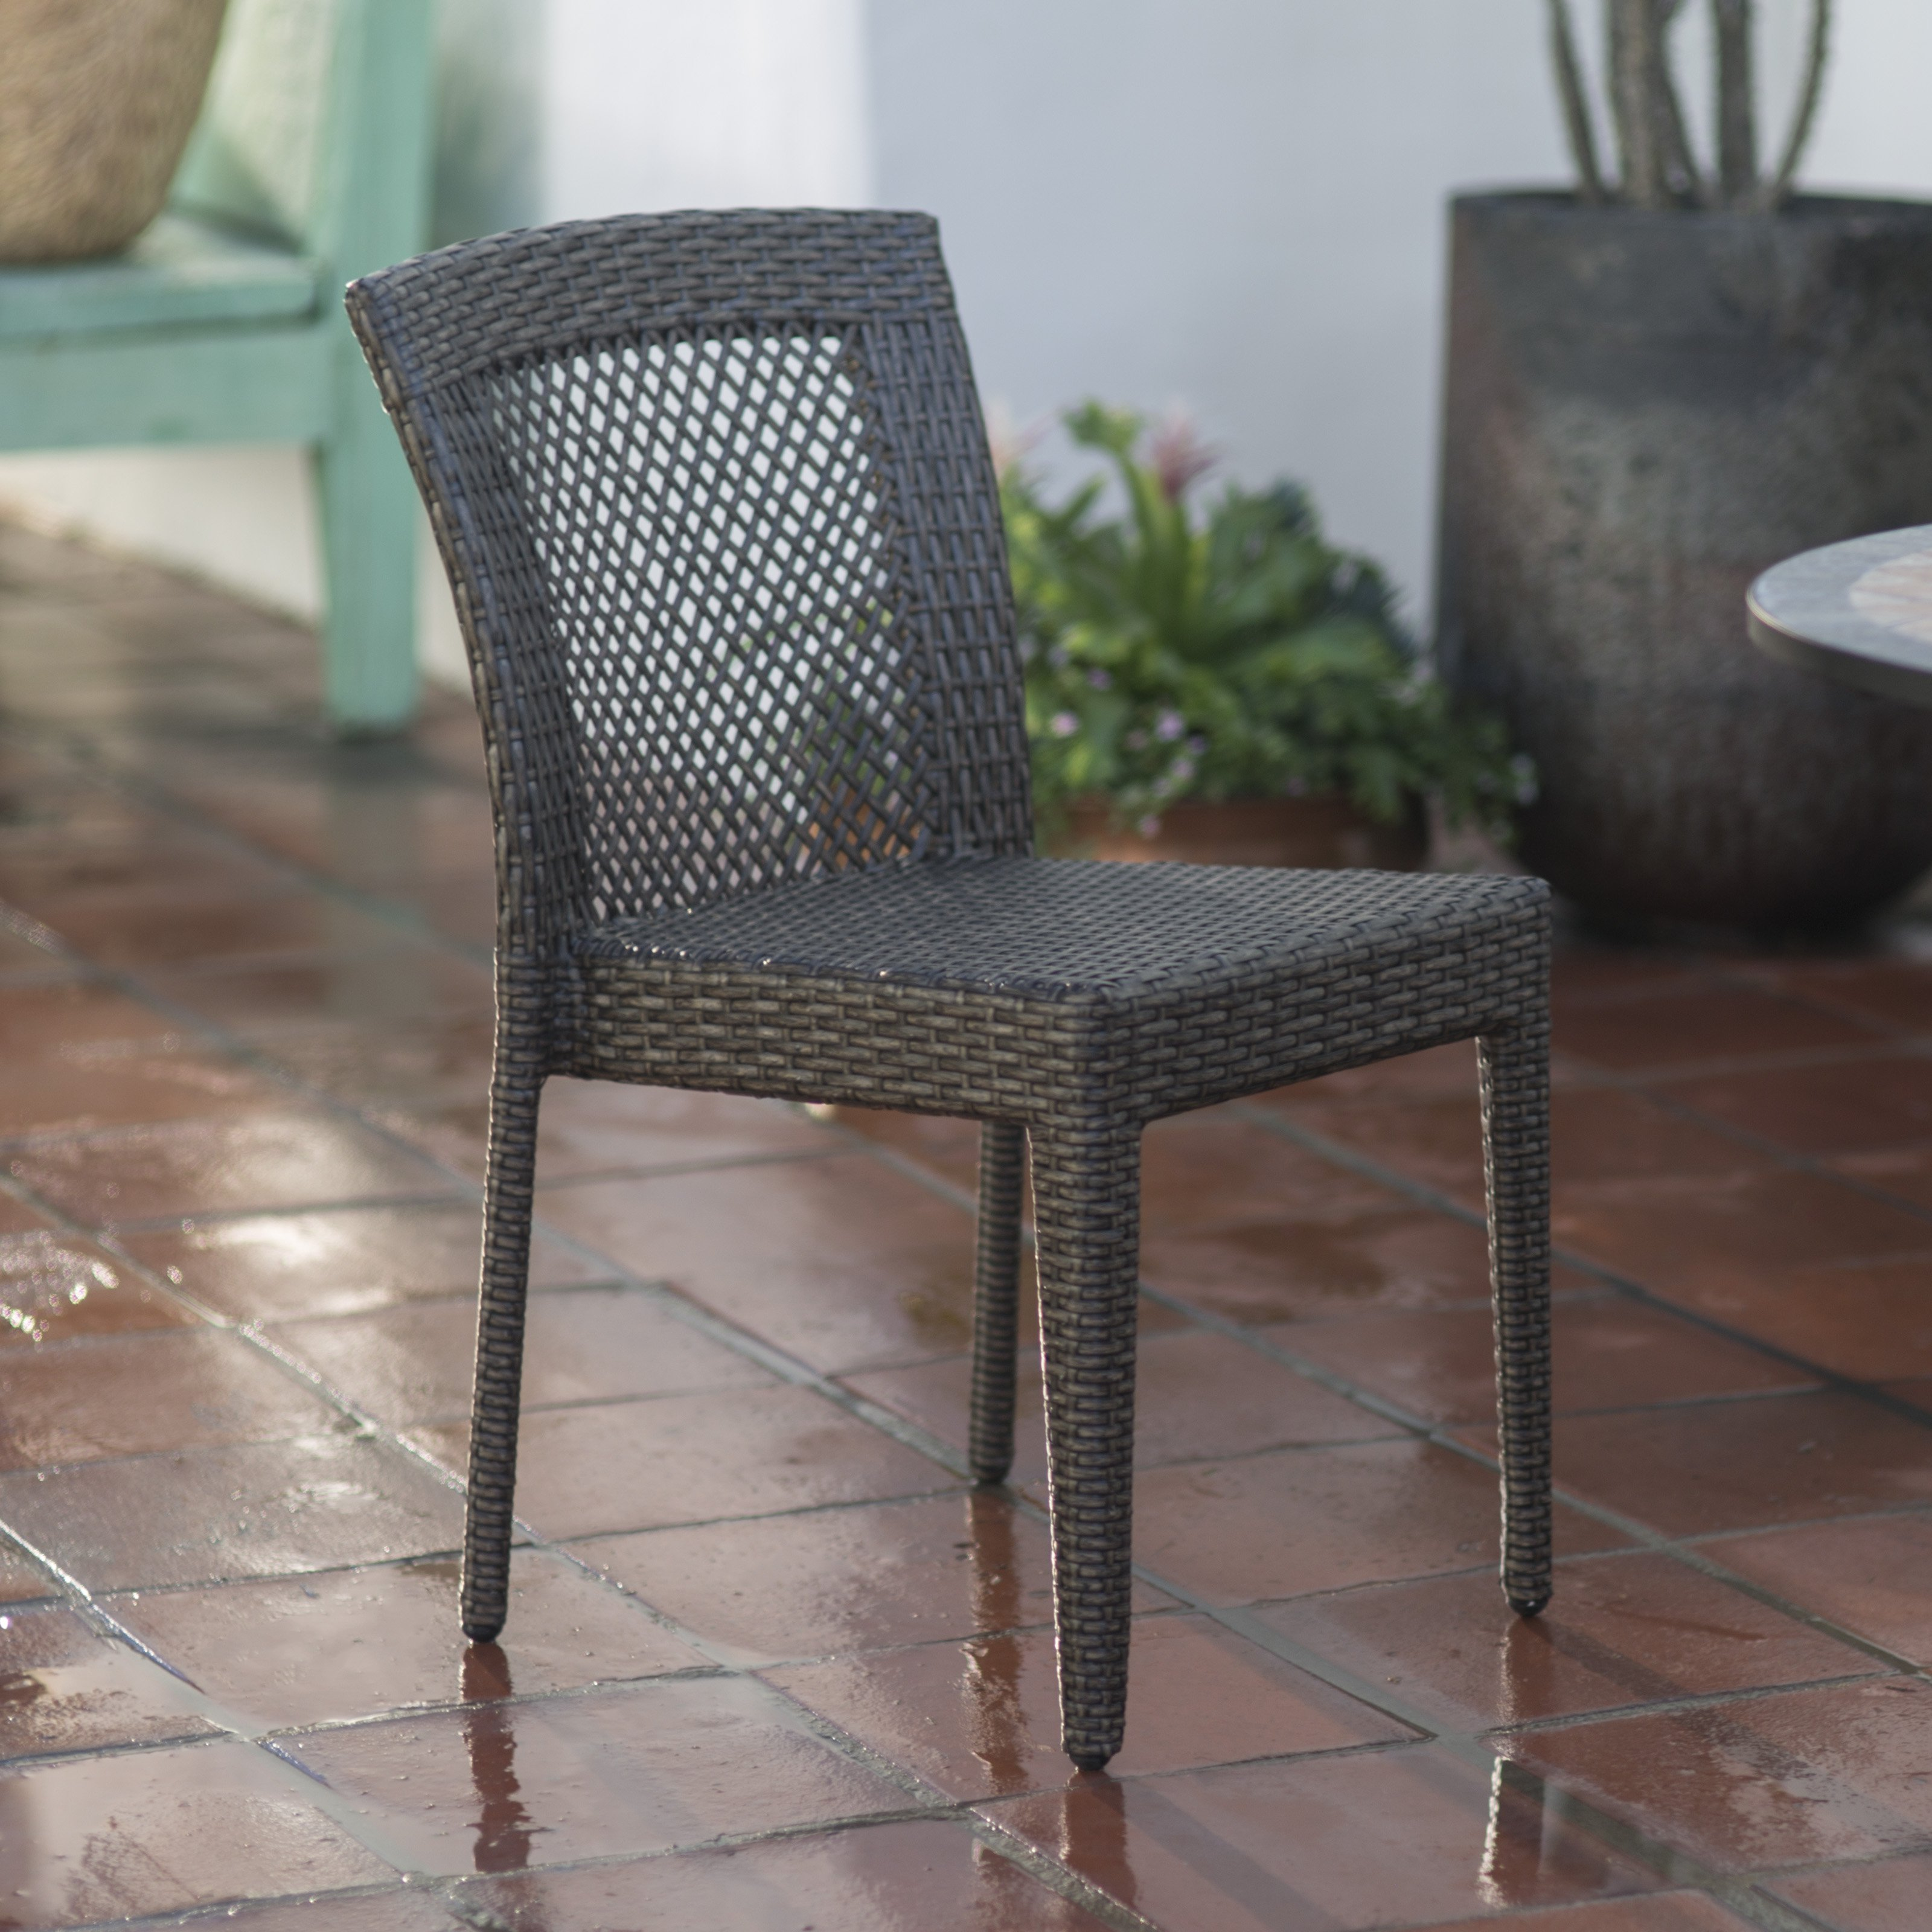 Coral Coast Brisbane All-Weather Wicker Open Patio Dining Chair by